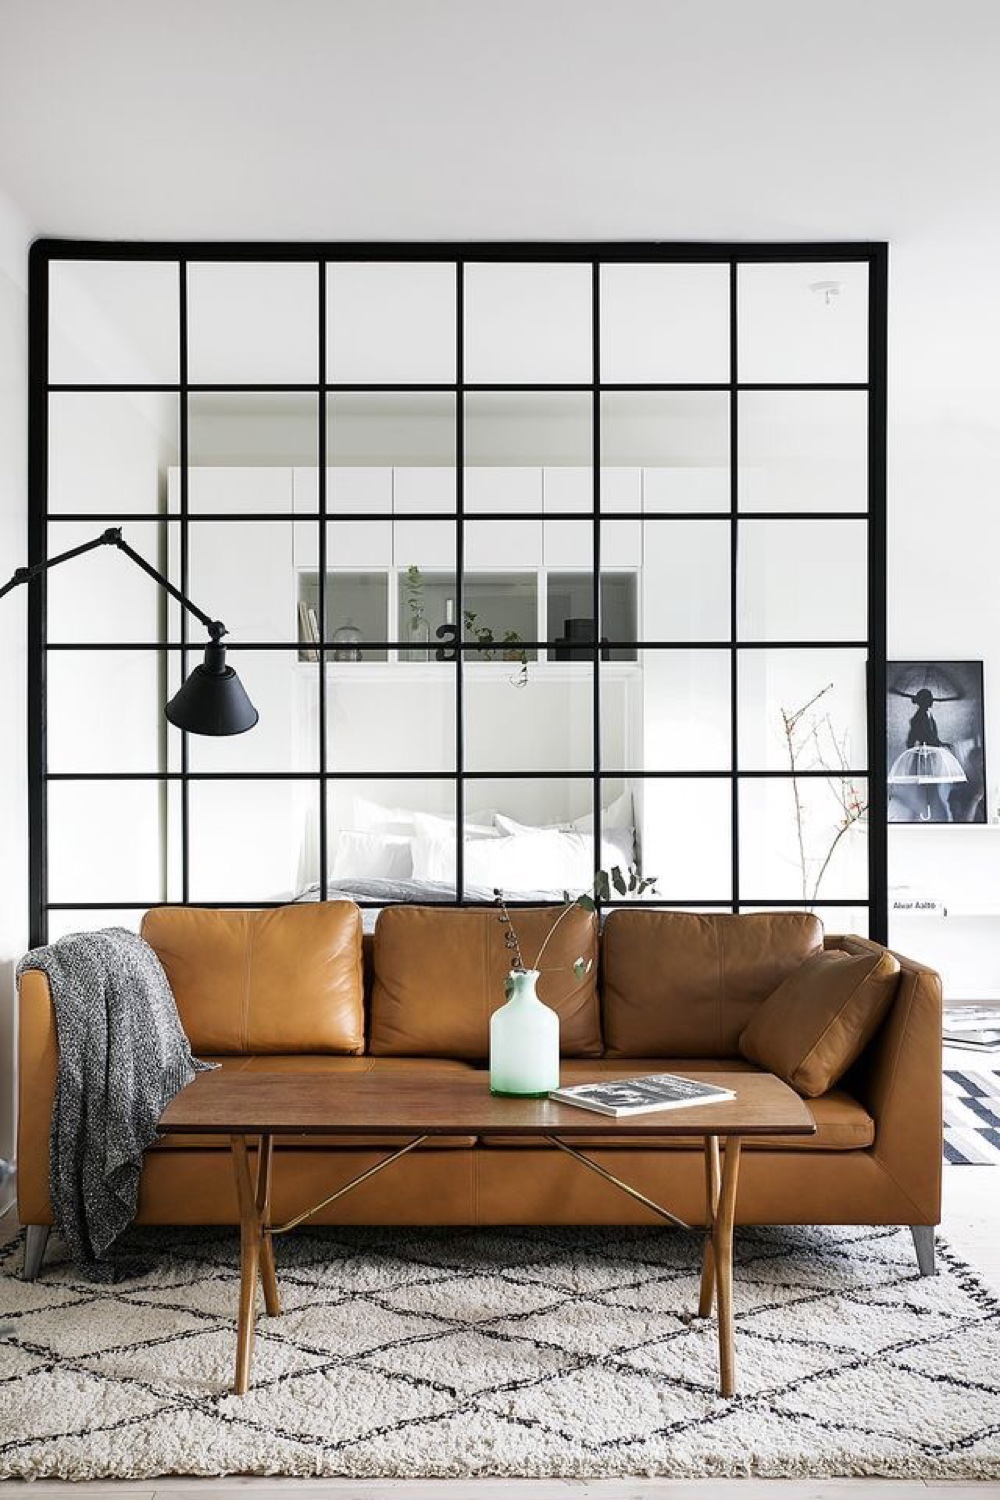 crittall, steel window frames, crittal, cripple, steel window design, london house, steel window fittings, interior inspiration, living etc house tours, ao.com,